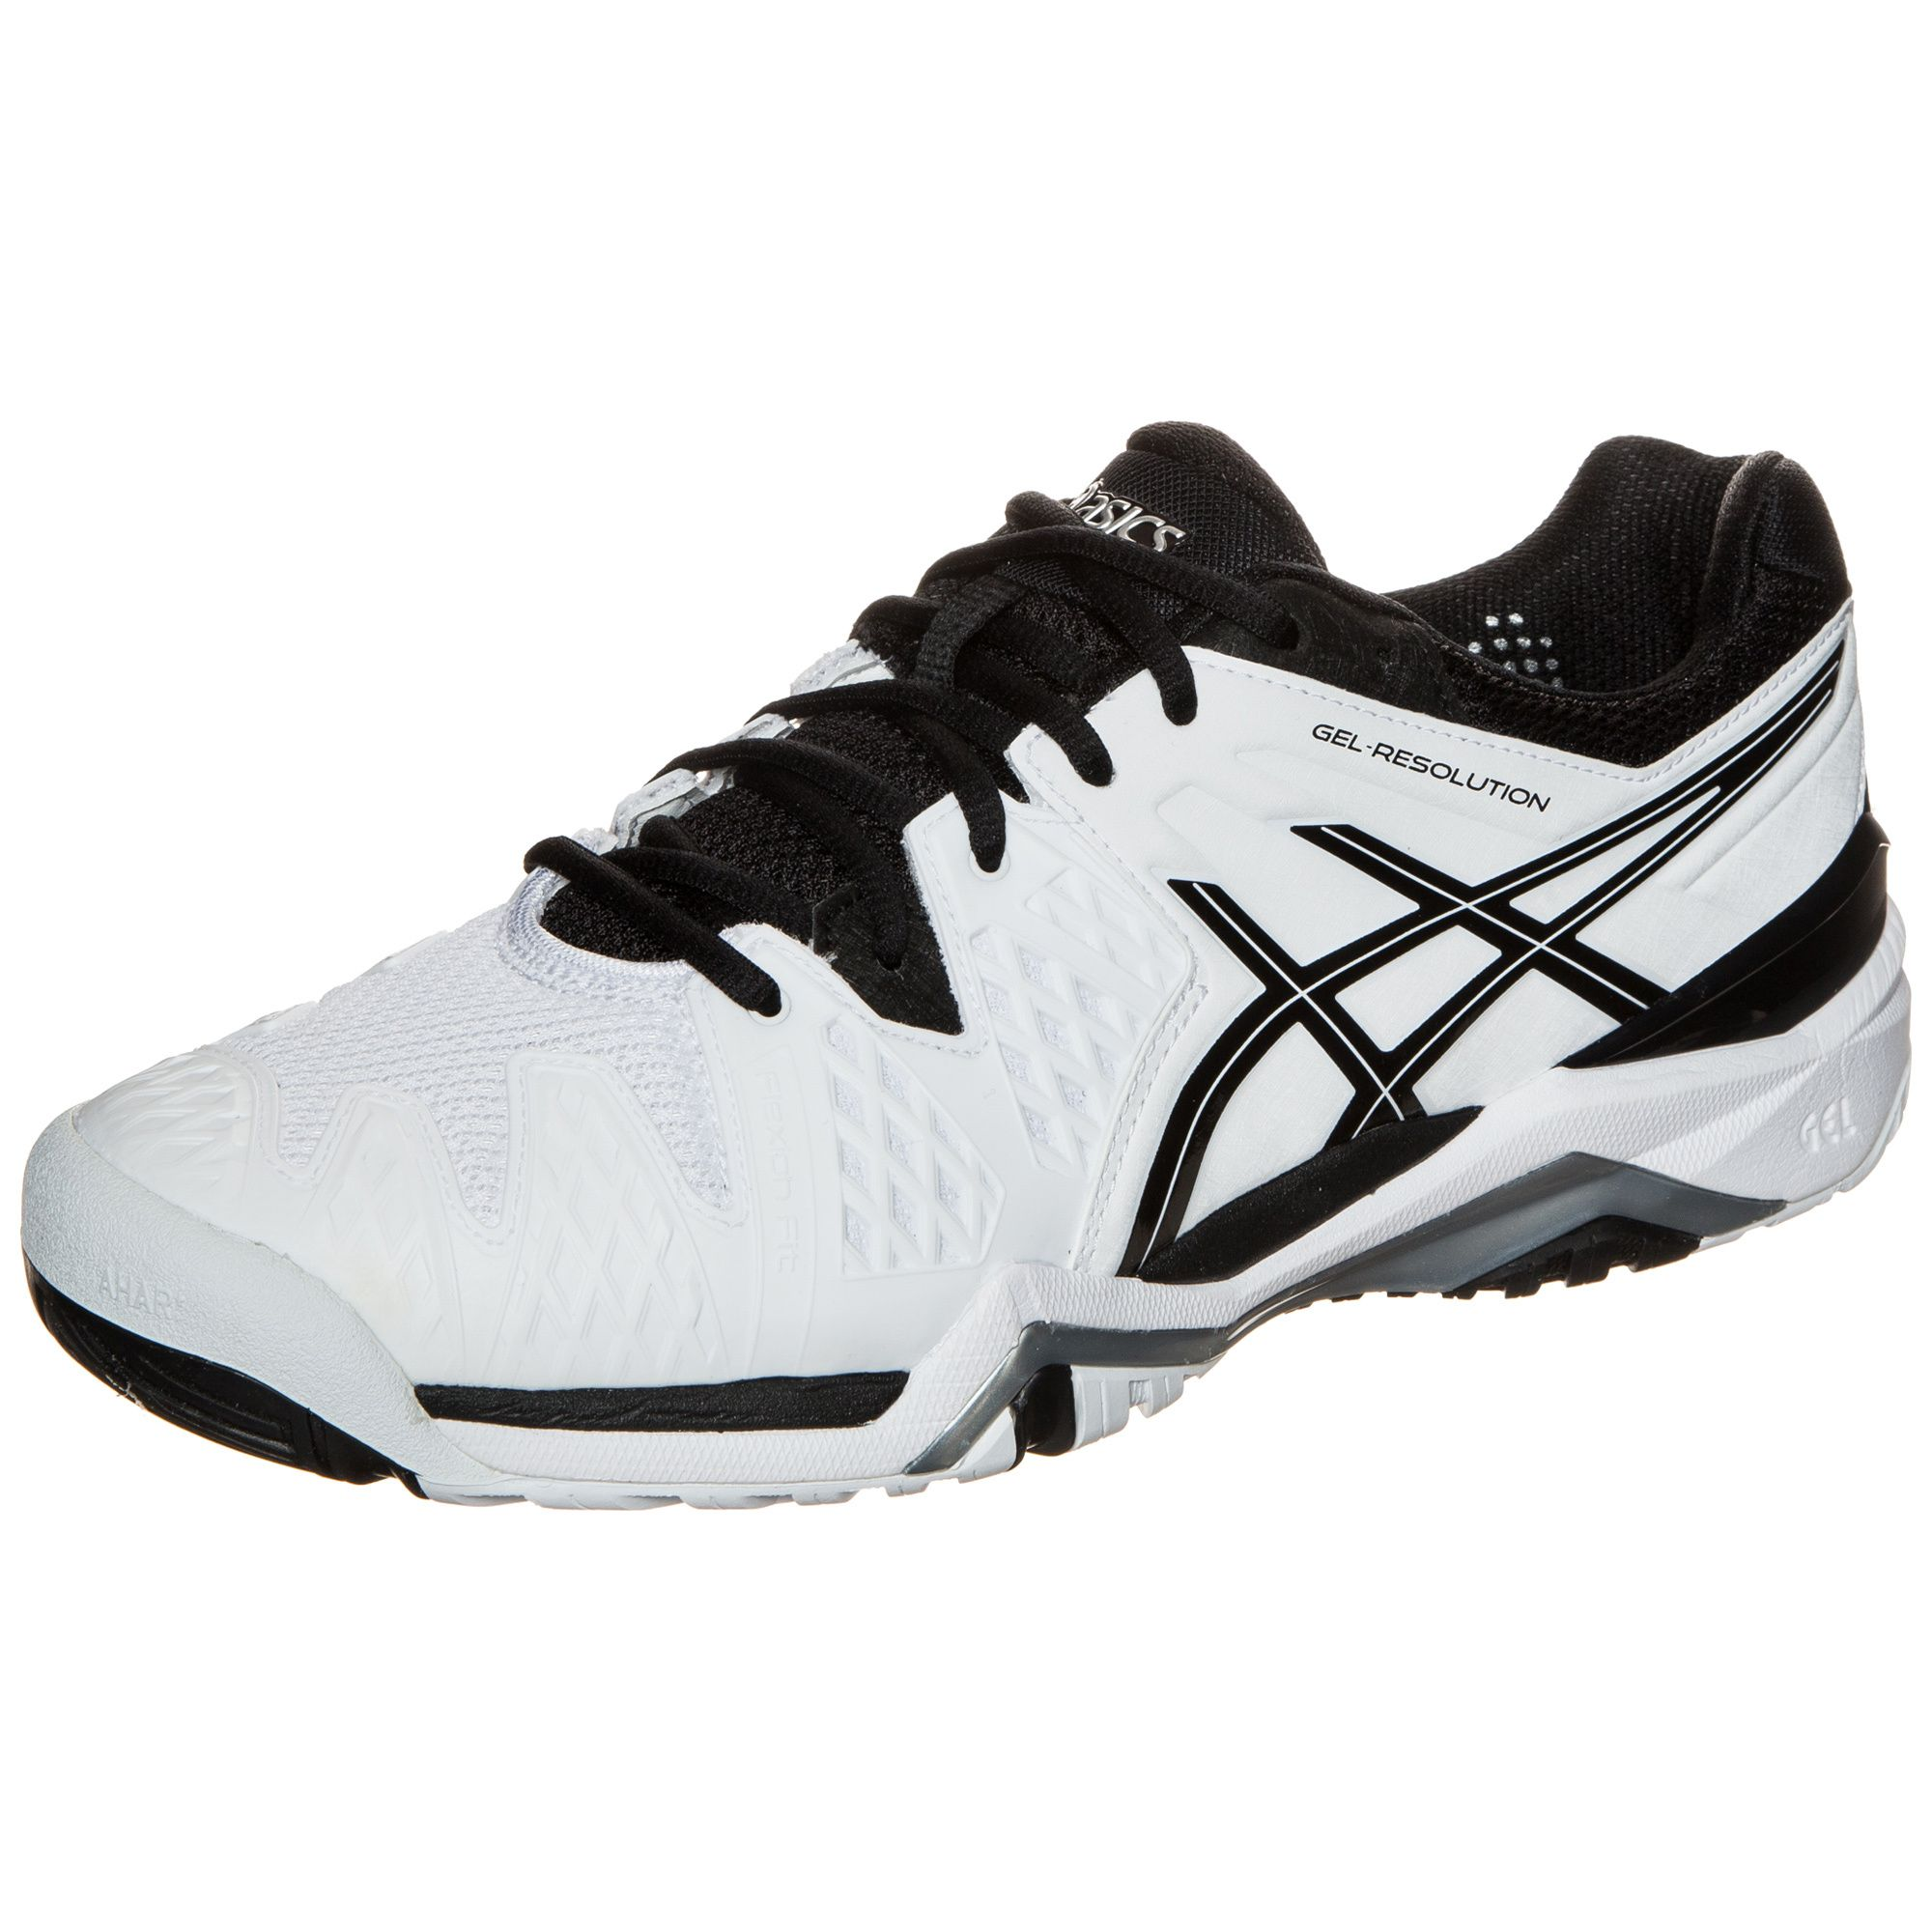 ASICS  Gel-Resolution 6 Tennisschuh Herren